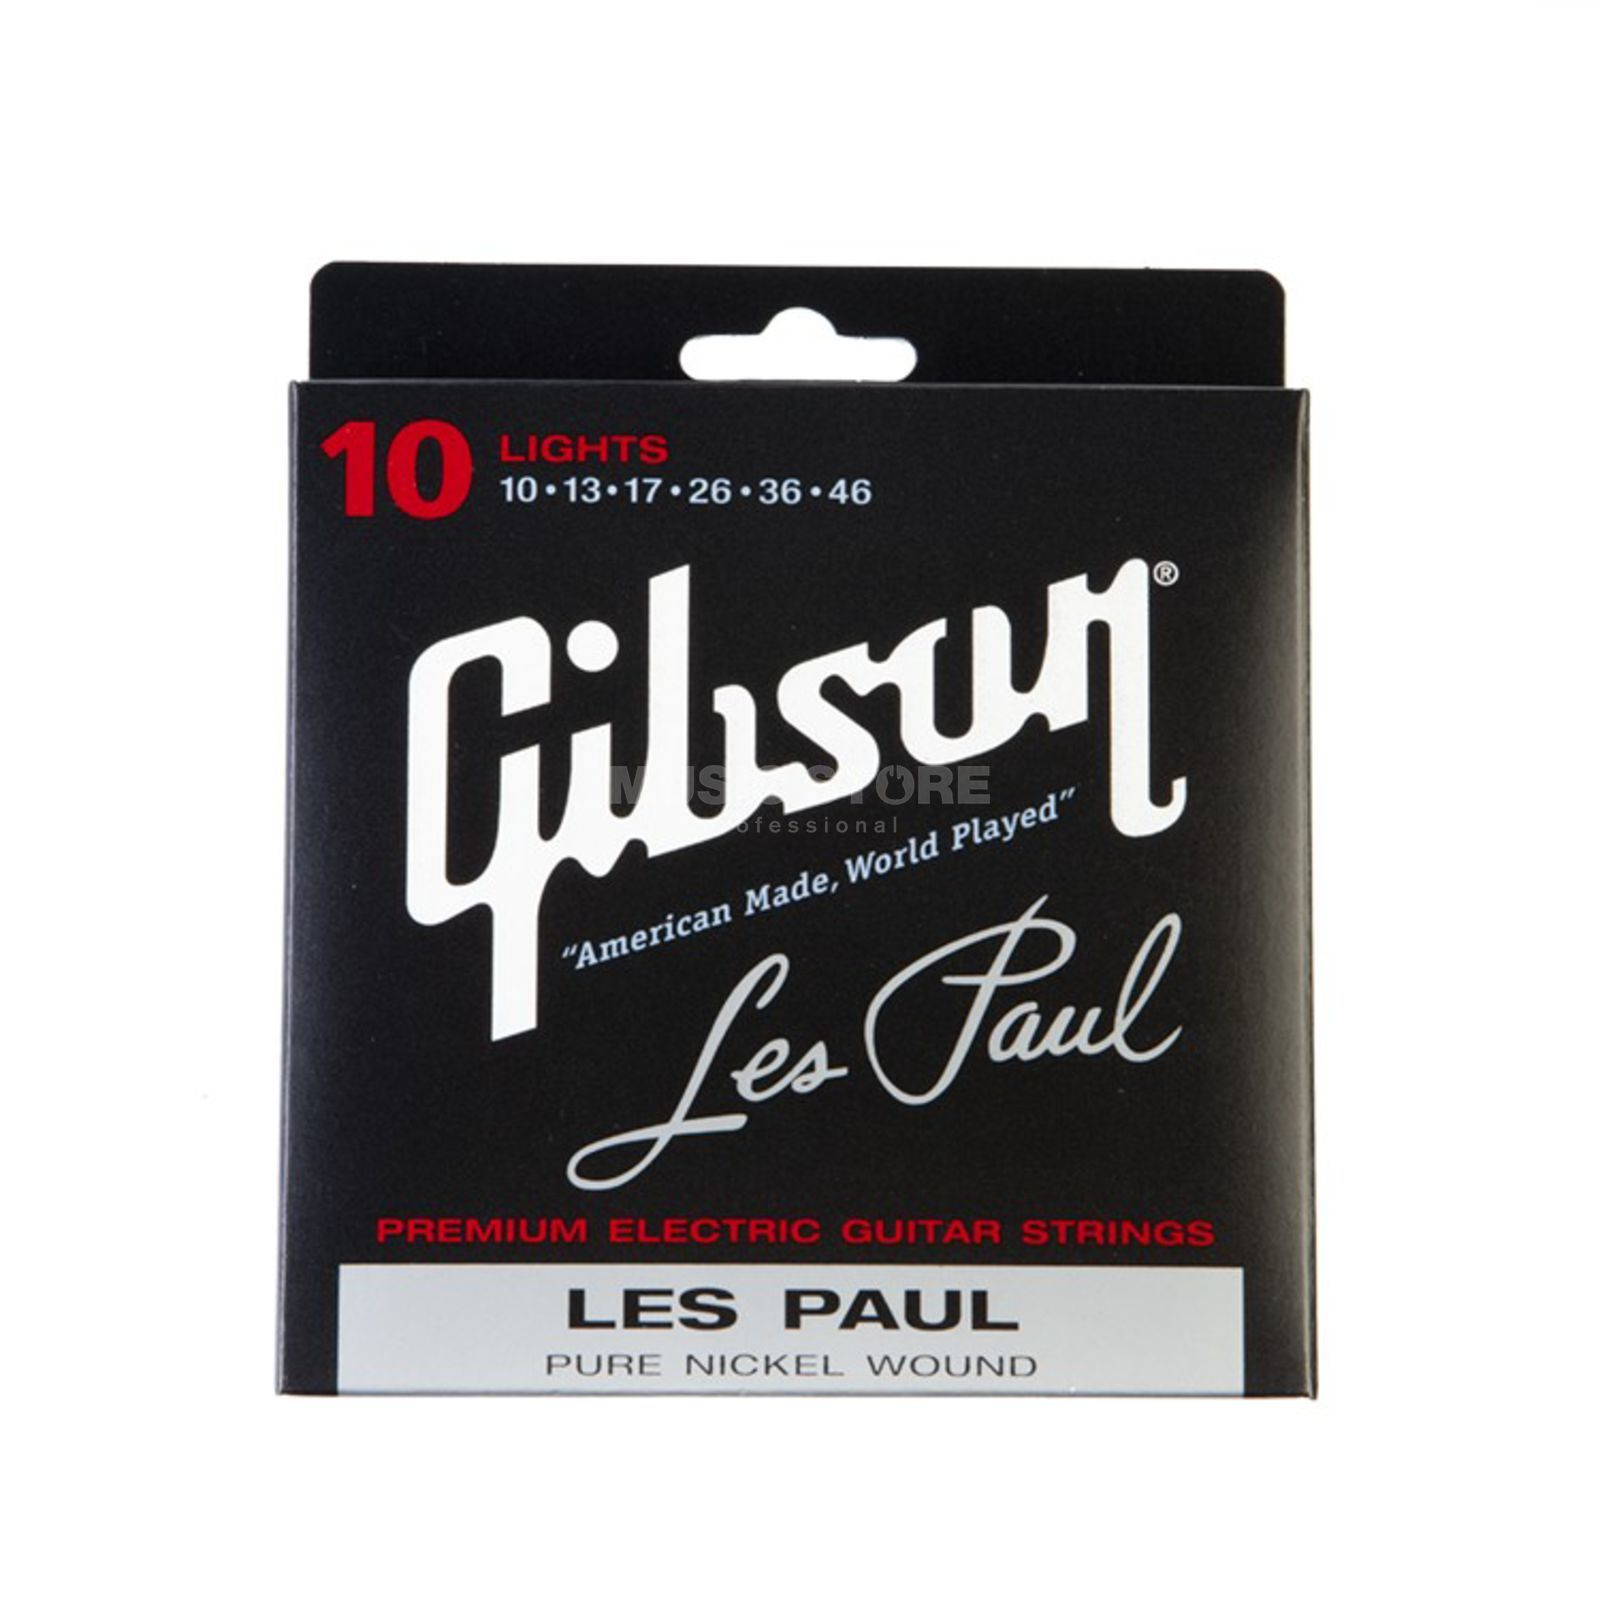 Gibson E-Guitar Strings 10-46 LesPaul Pure Nickel Wound Produktbillede